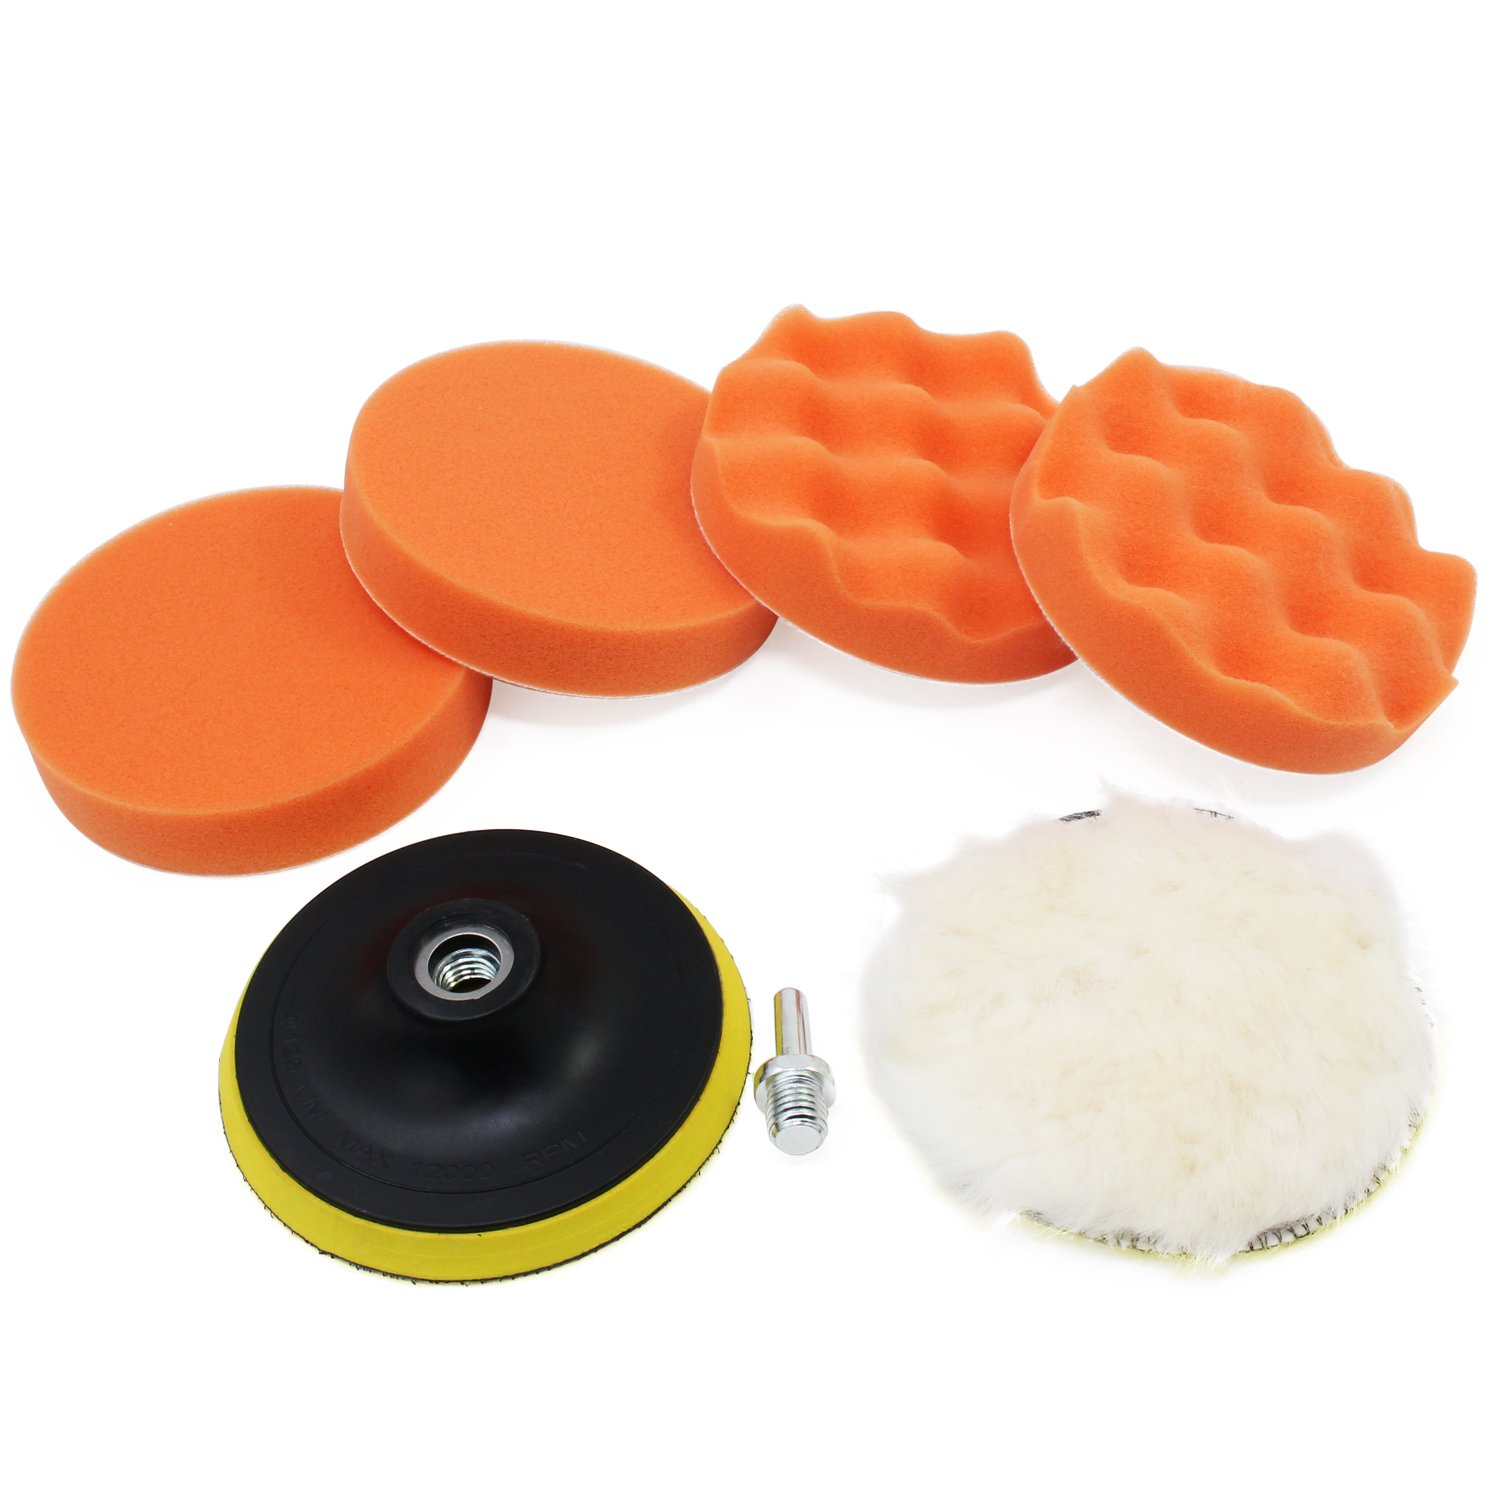 OCR 5inch Car Polishing Buffer Waxing Buffing Pad Drill Polishing Sponge Wheel Set with Drill Adapter for M14 Connector Drill(5inch-7pcs)